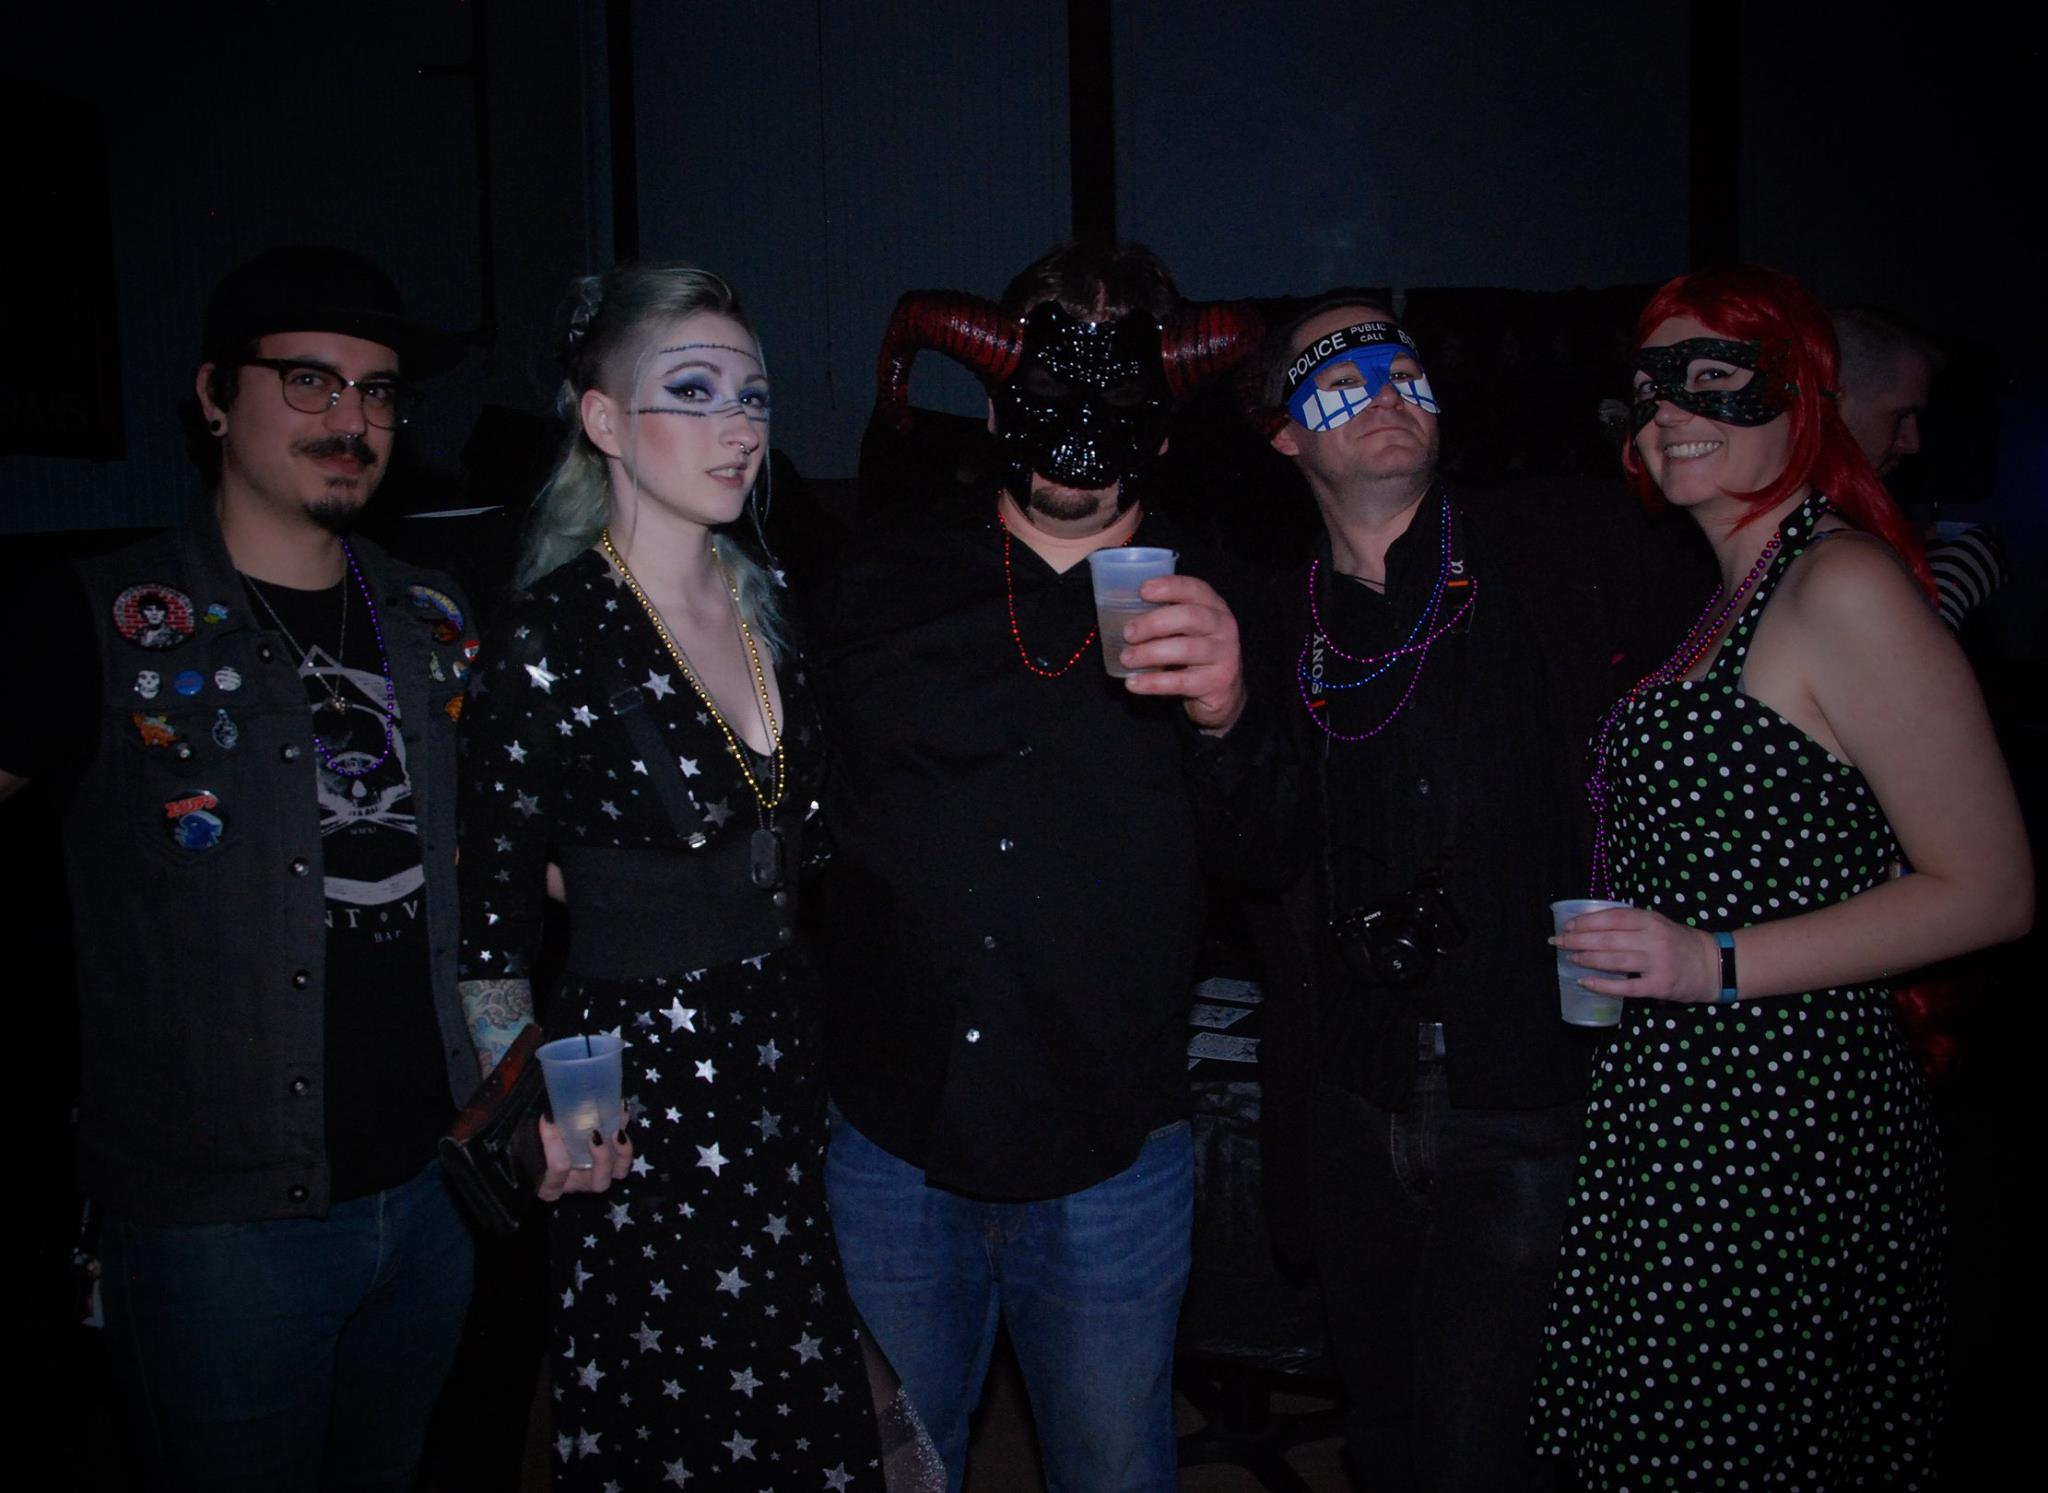 TheHavenClub-Goth-Industrial-Dance-Alternative-Northampton-MA (25).jpg